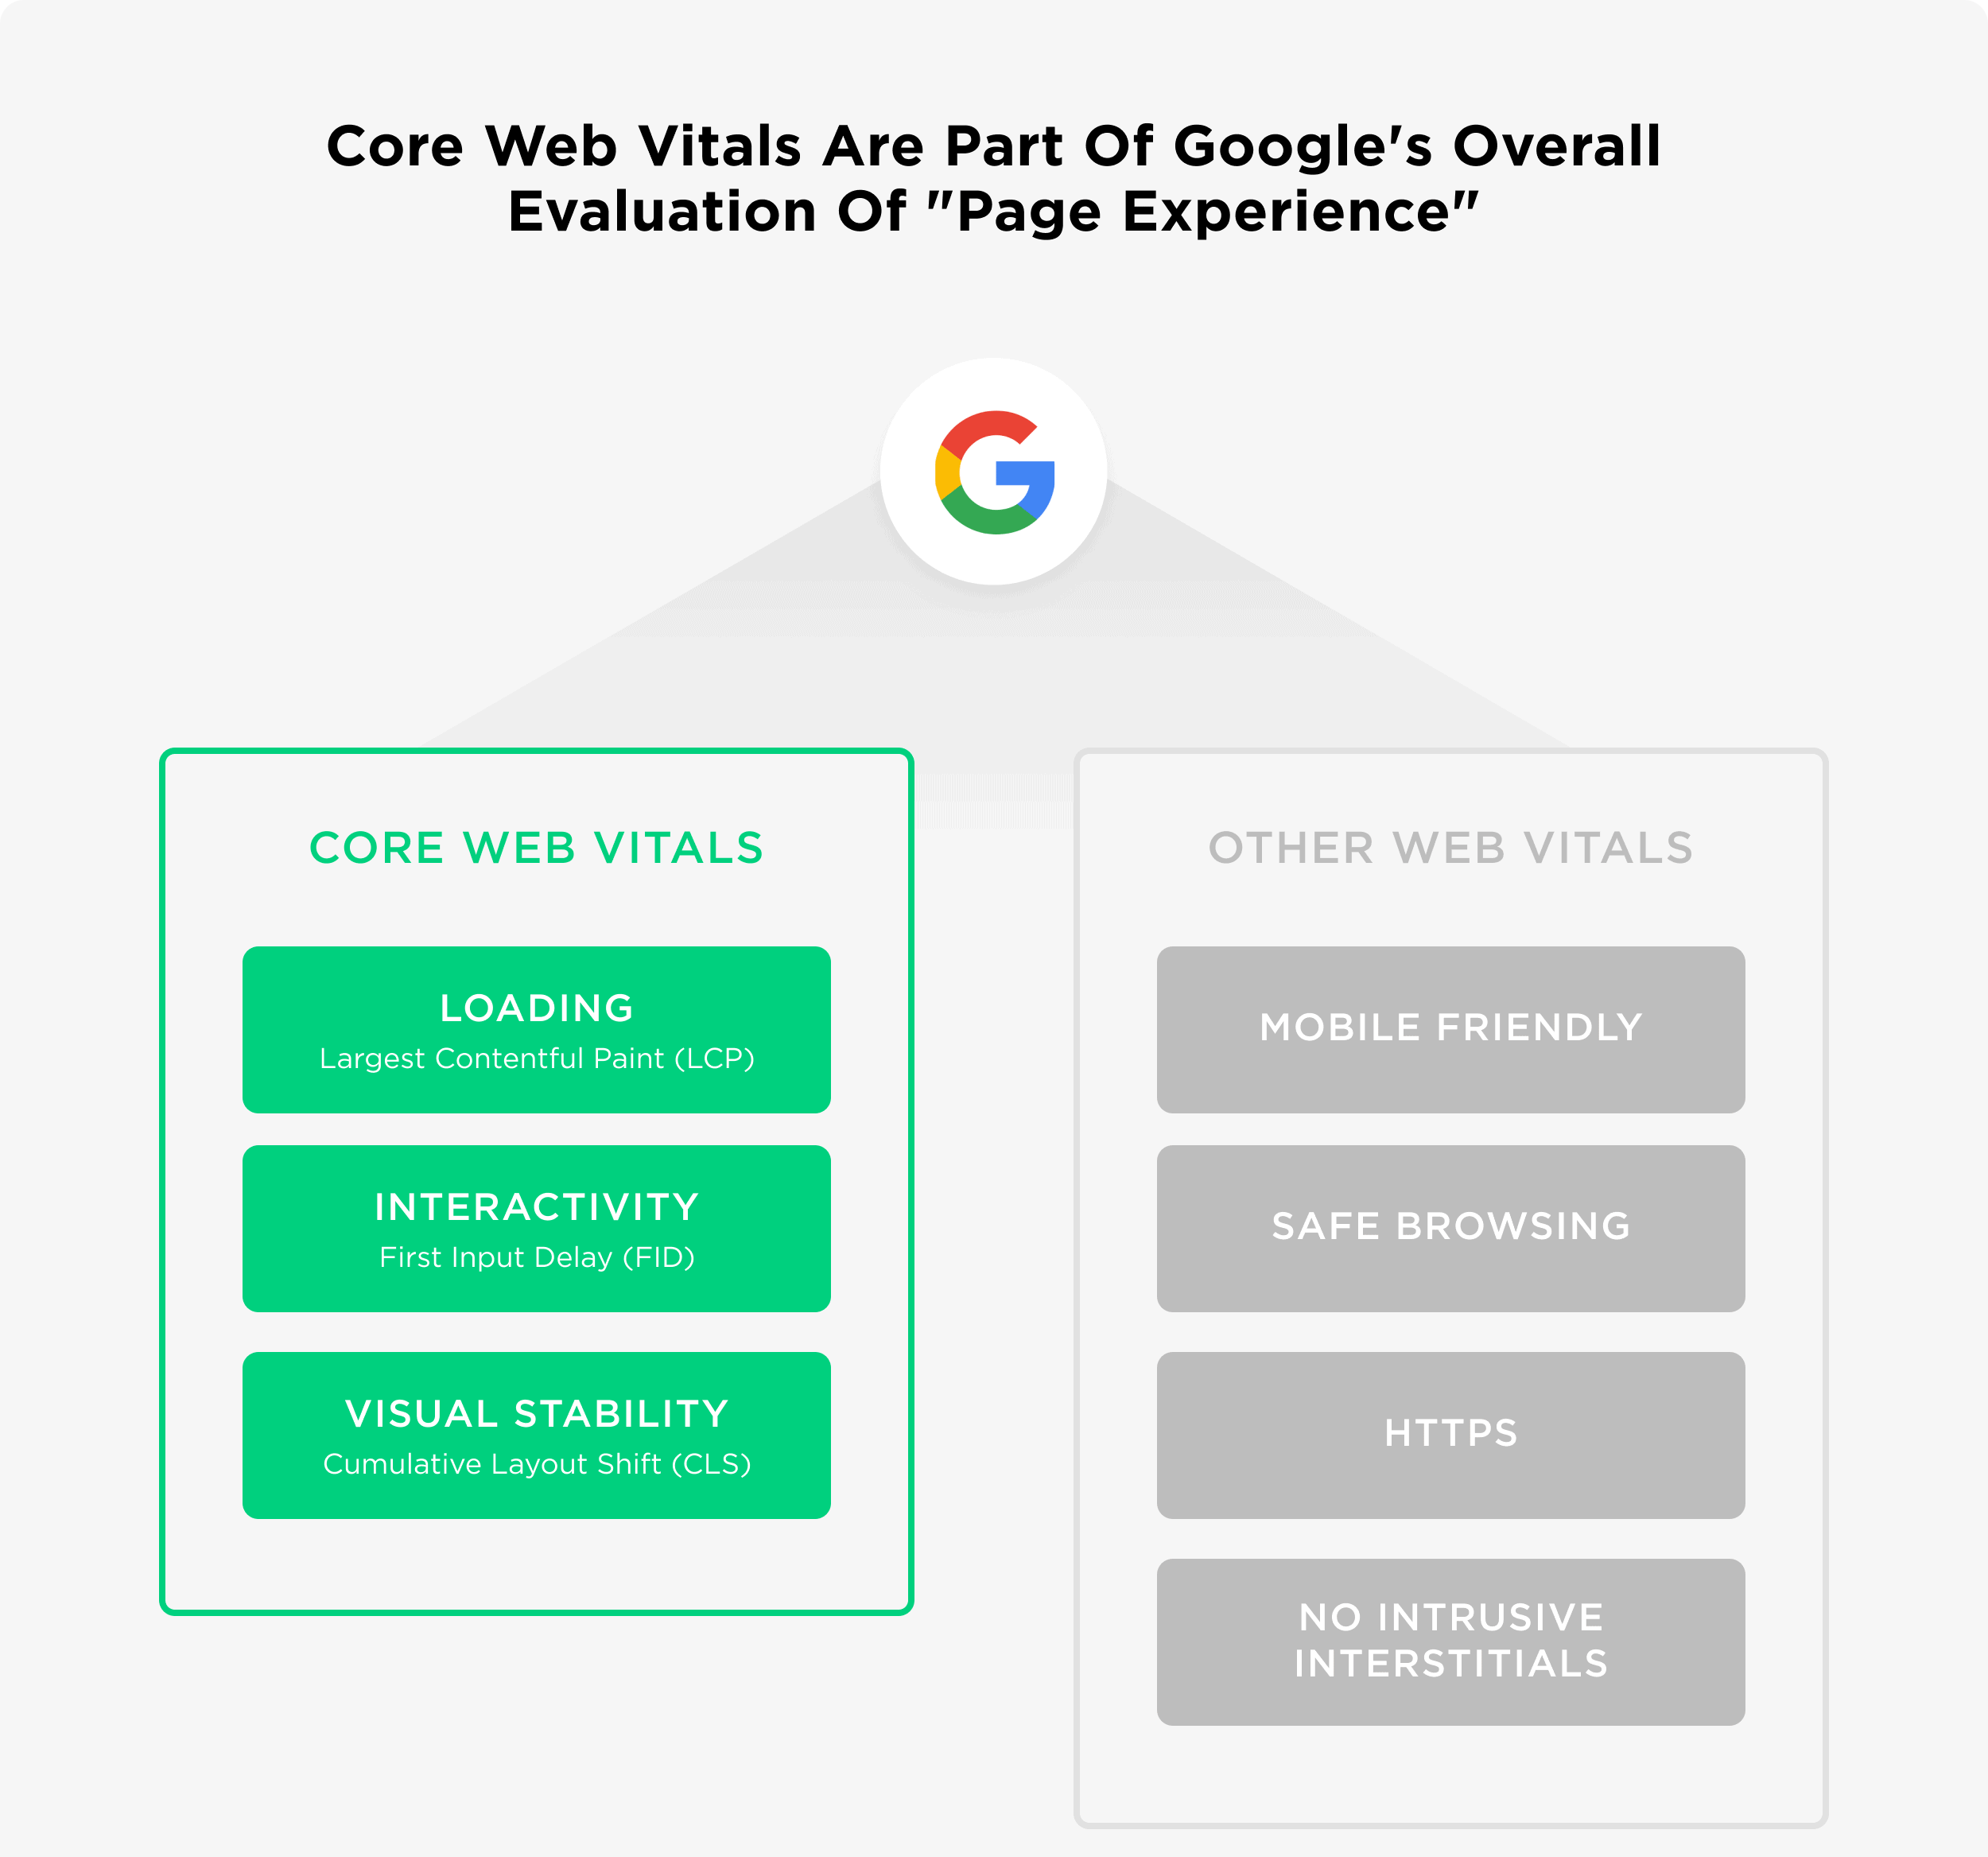 Crucial Web Vitals to Consider